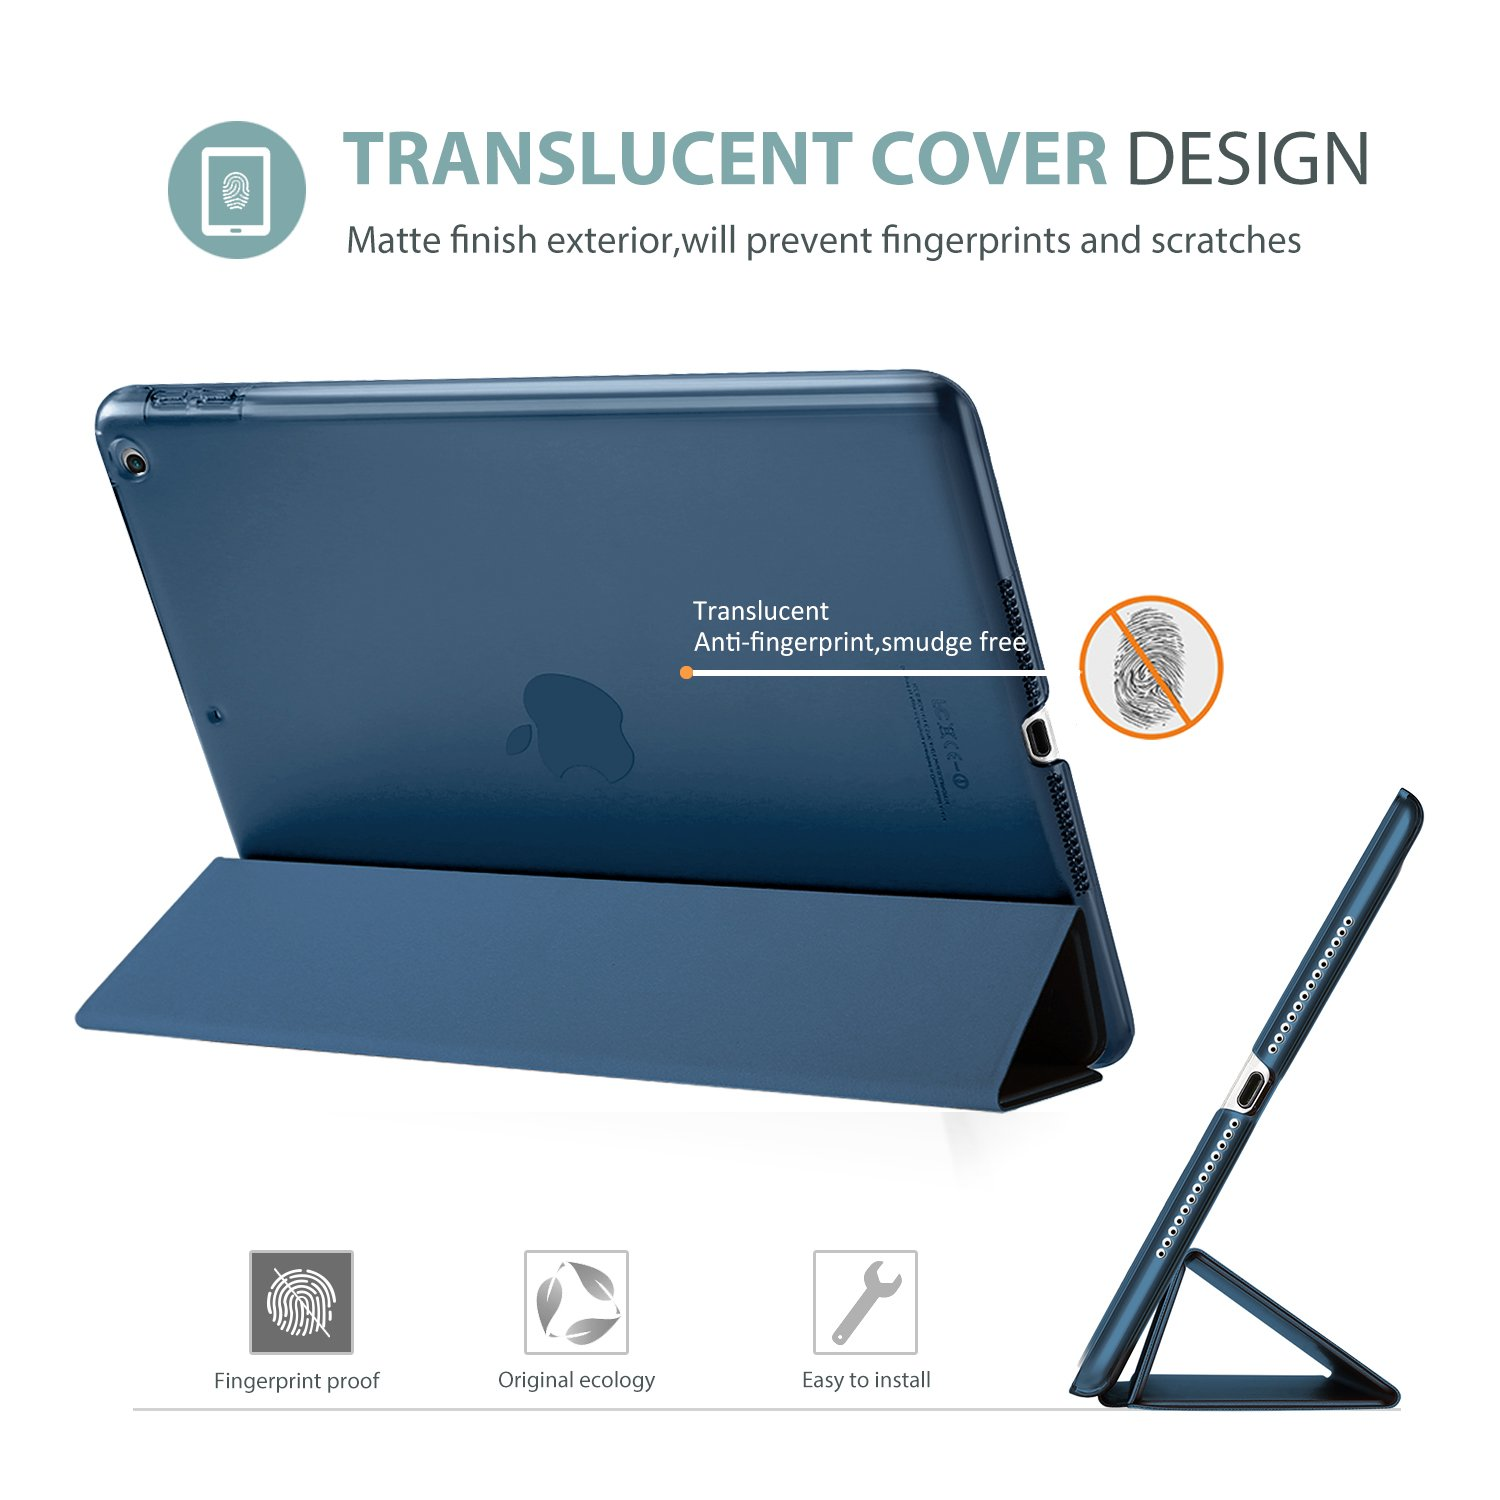 ProCase iPad 9.7 Case 2018 iPad 6th Generation Case / 2017 iPad 5th Generation Case - Ultra Slim Lightweight Stand Case with Translucent Frosted Back Smart Cover for Apple iPad 9.7 Inch -Navy Blue by ProCase (Image #3)